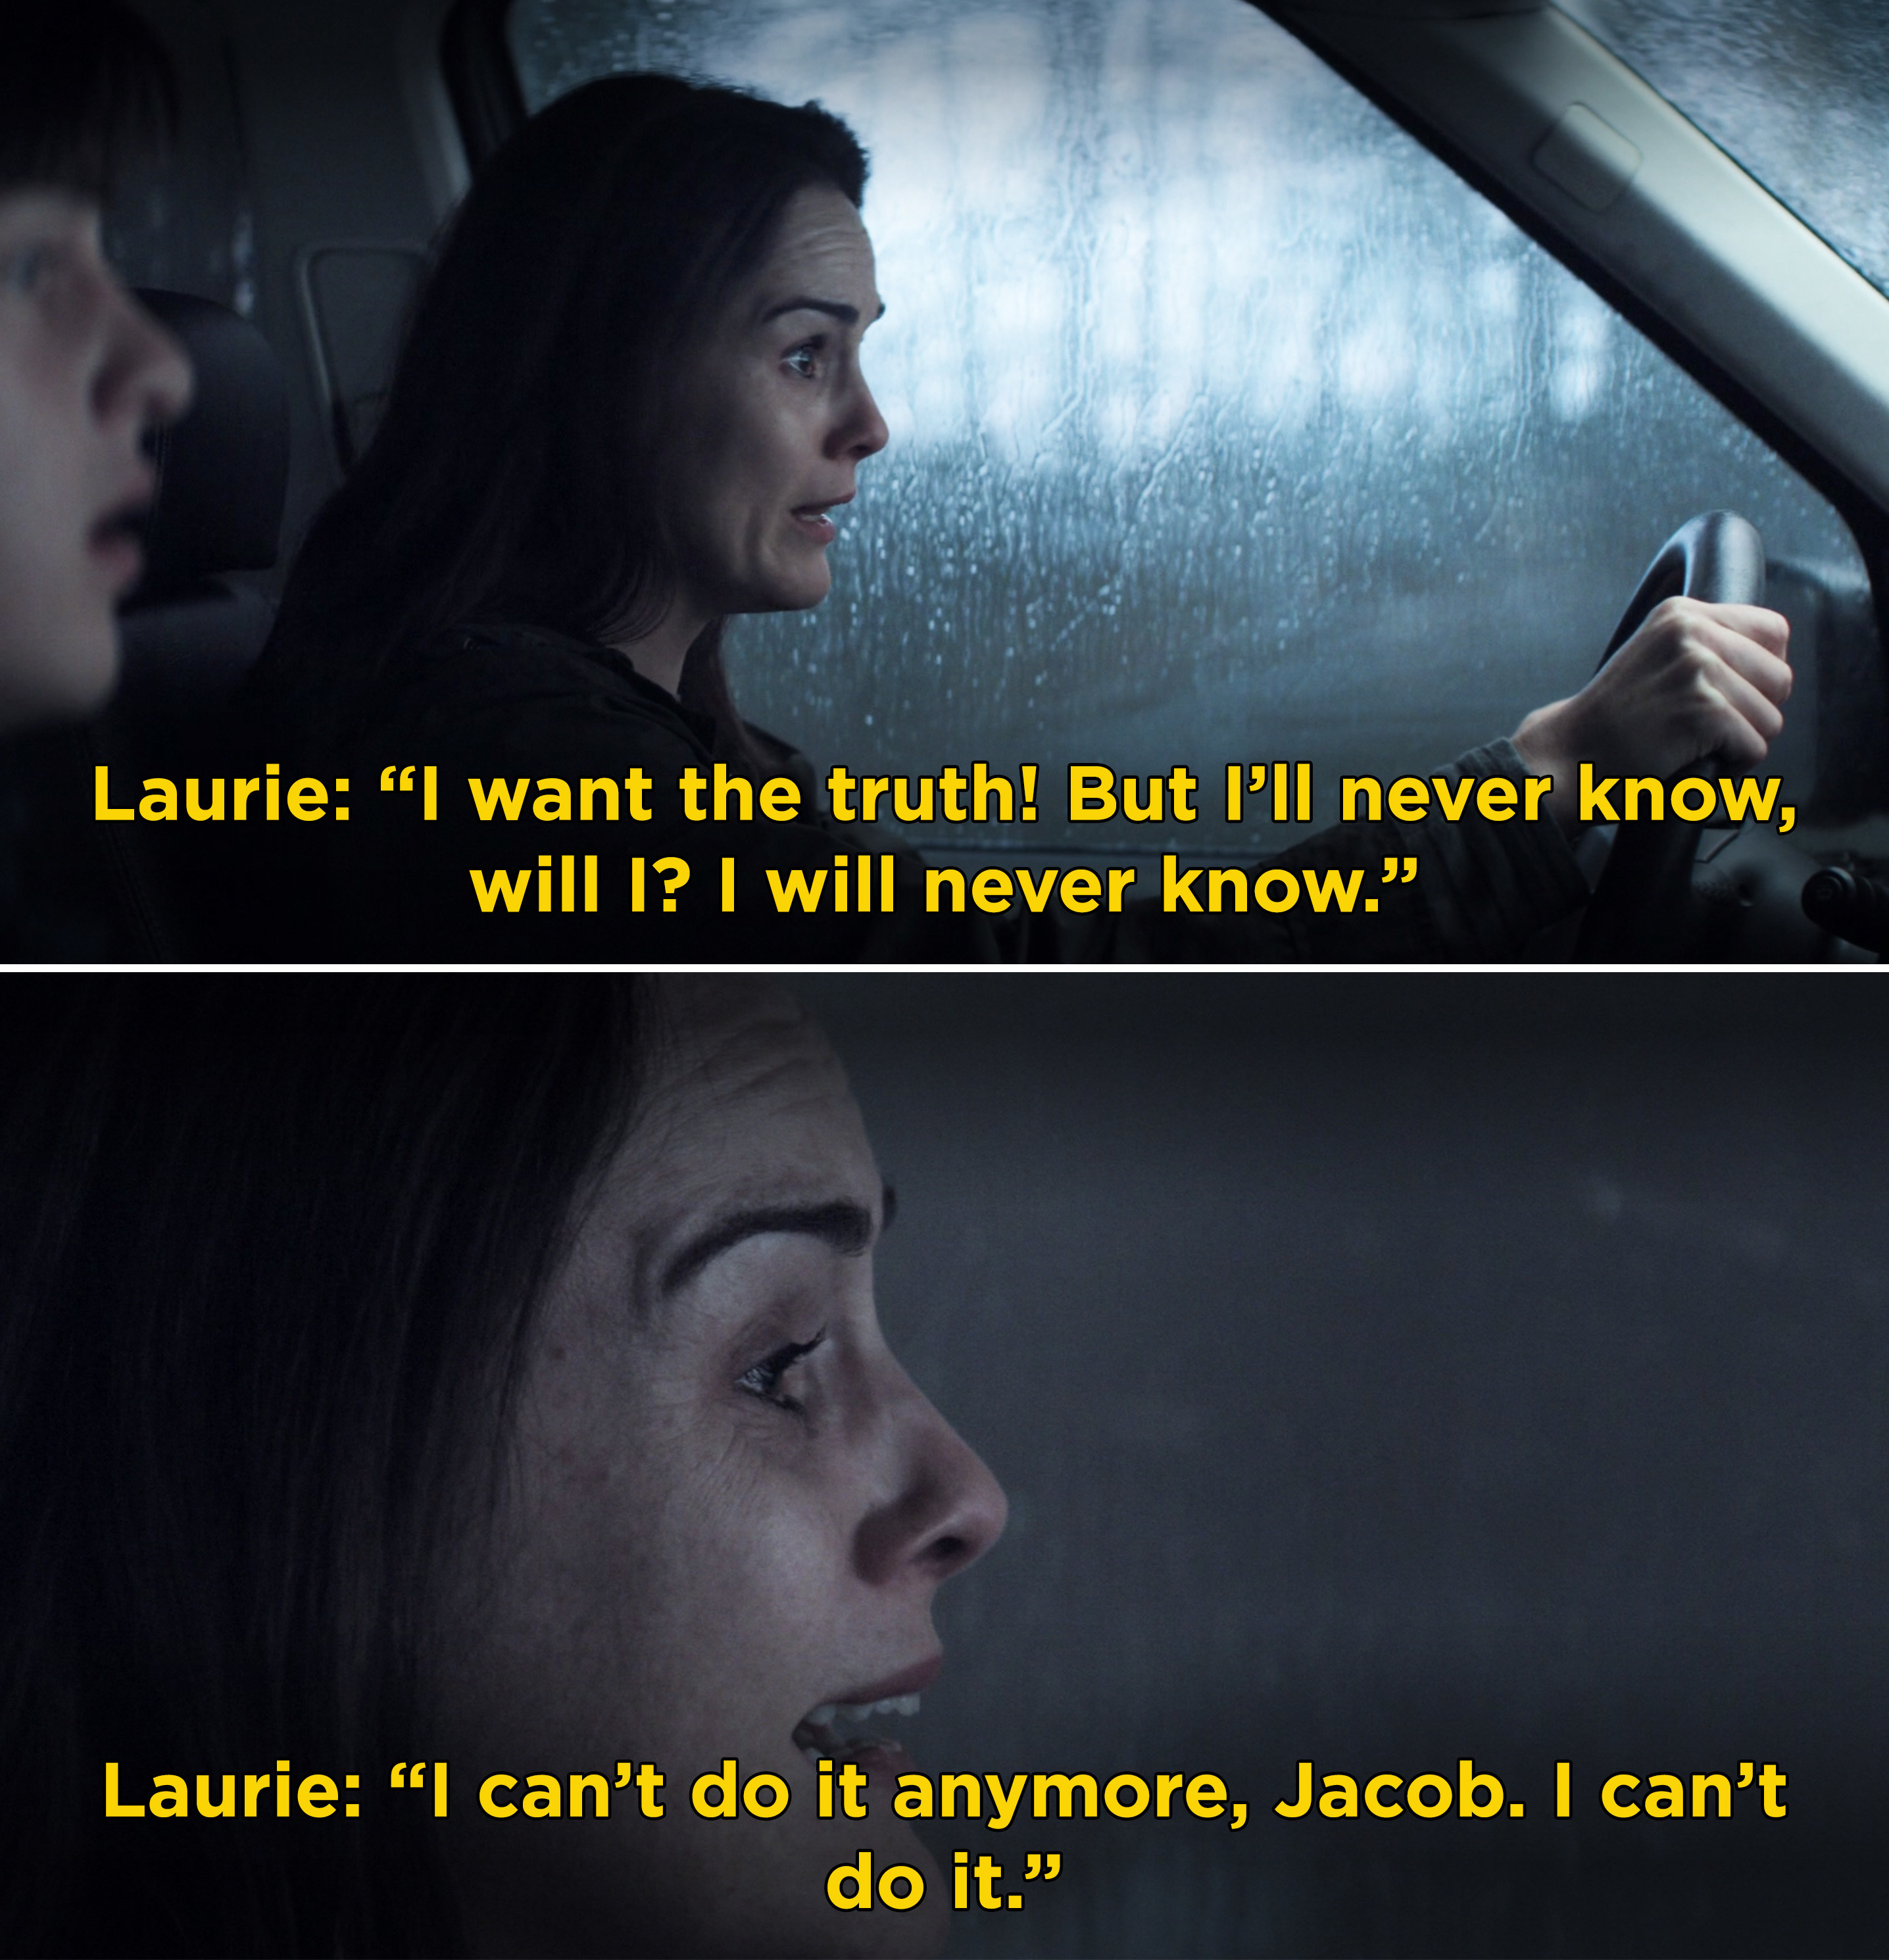 """Laurie yelling that she needs to know the truth and she can't """"do it anymore"""""""